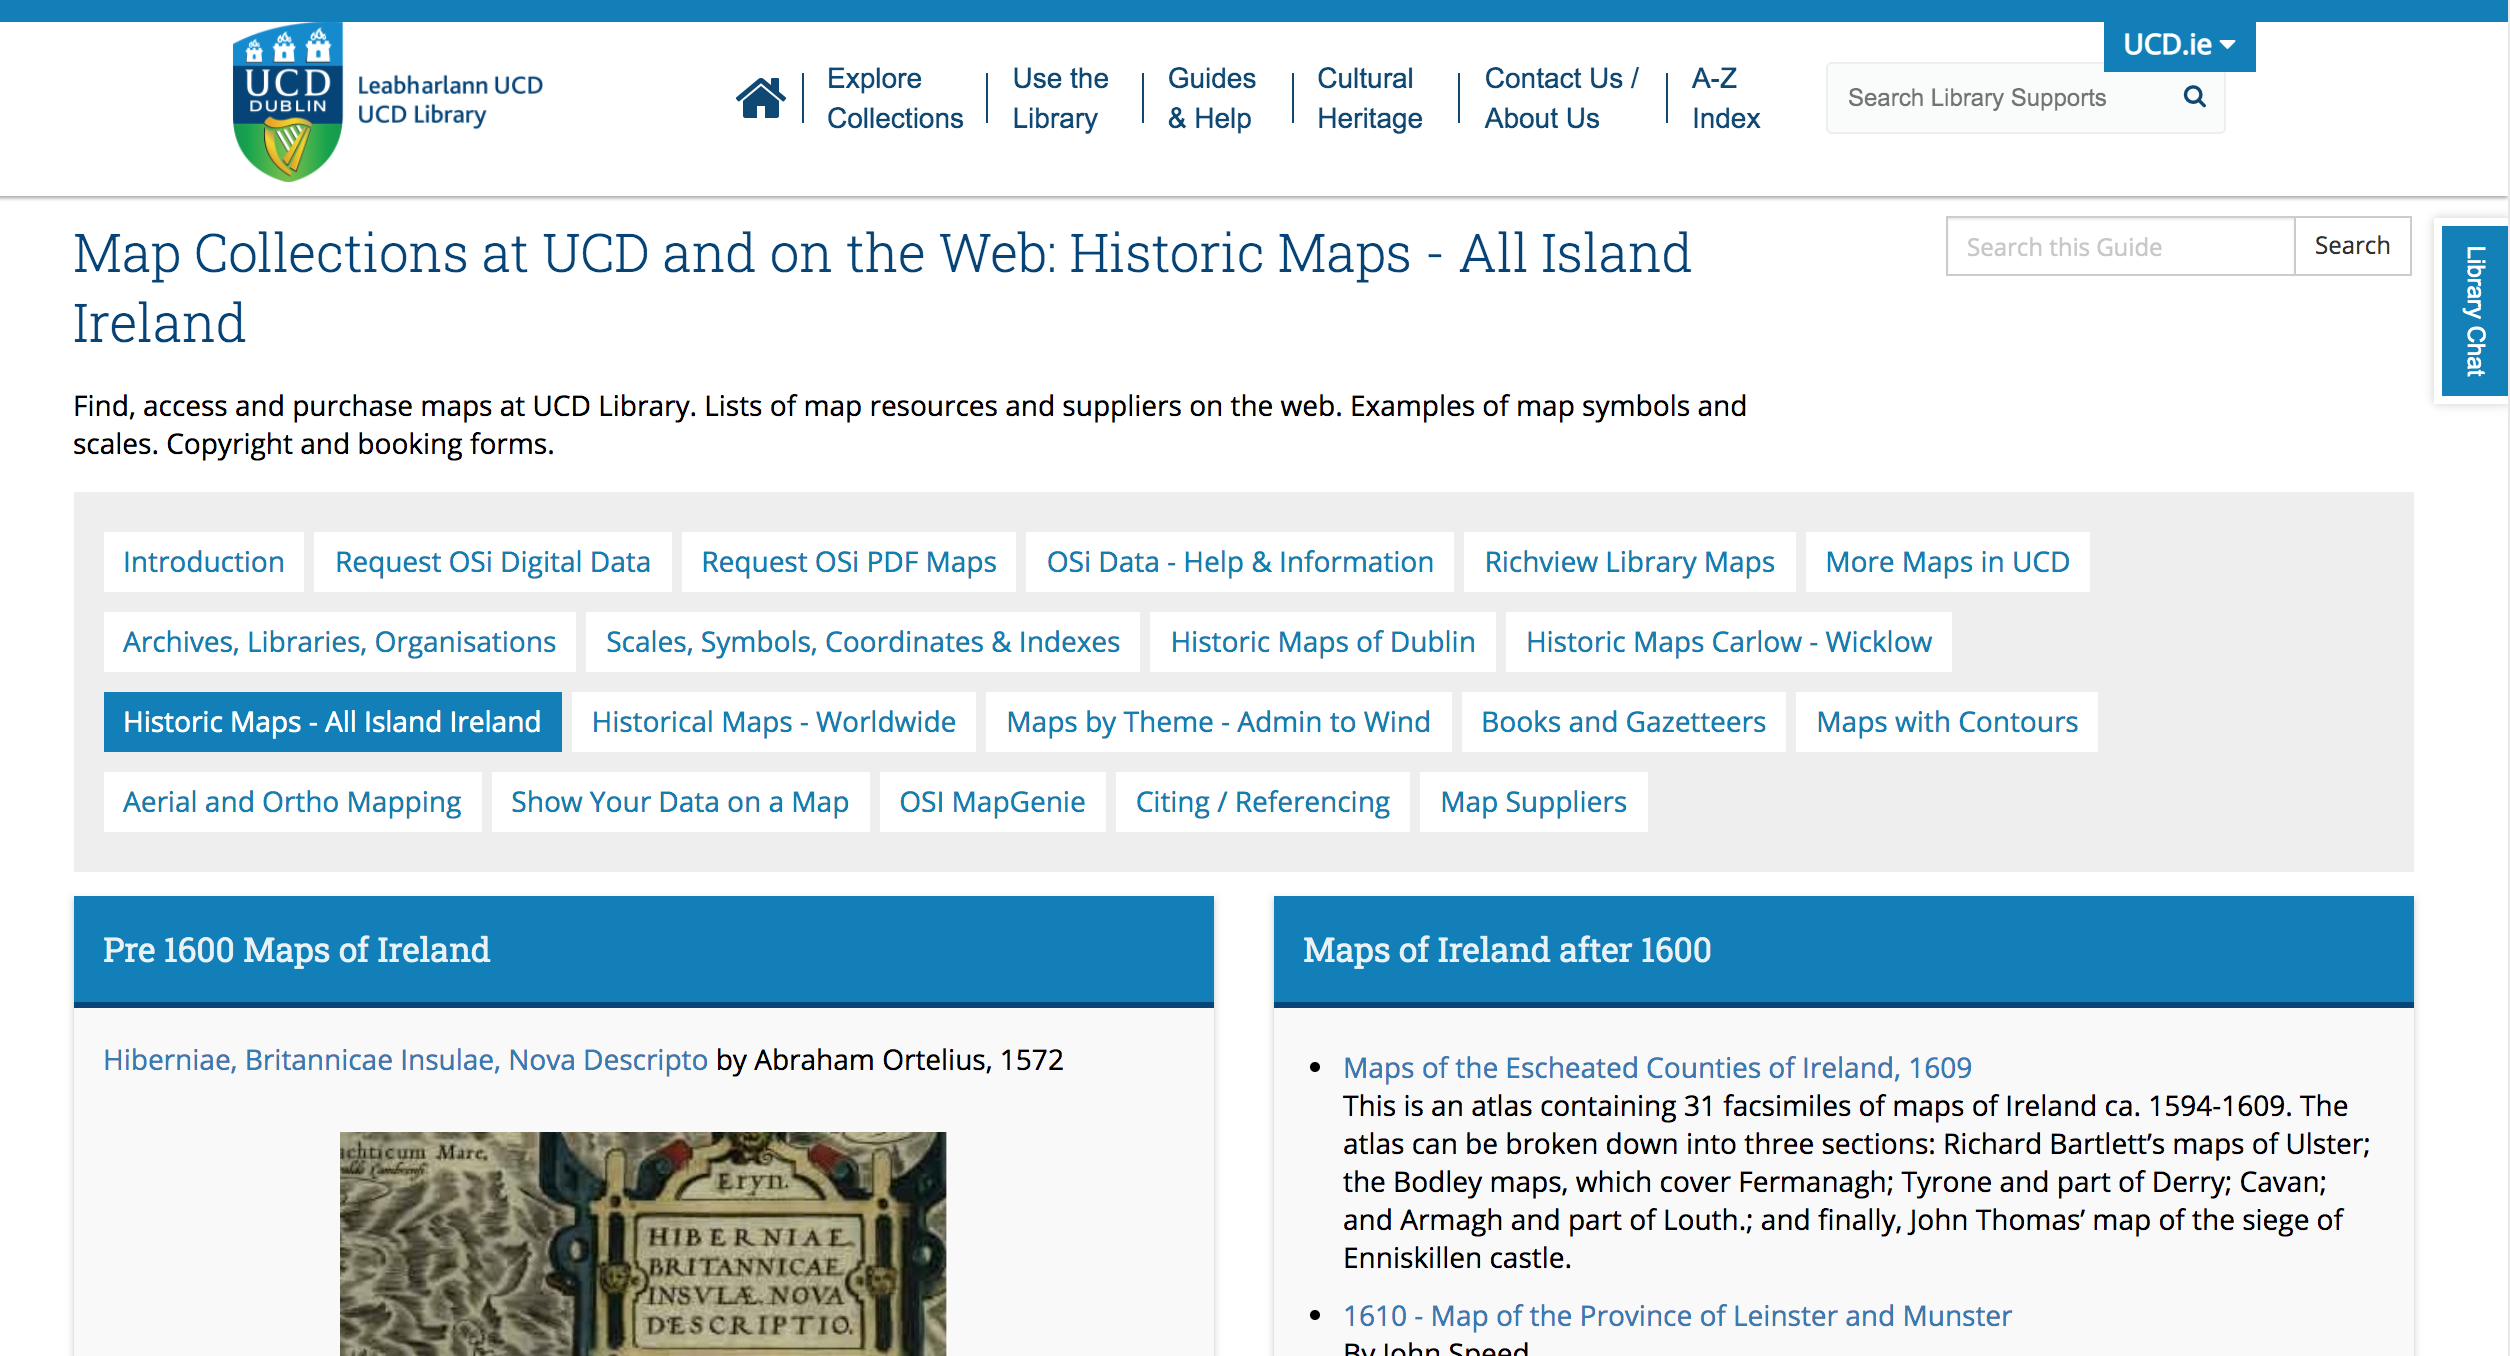 Map Collections at UCD and on the Web: Historic Maps - All Island Ireland Find, access and purchase maps at UCD Library. Lists of map resources and suppliers on the web. Examples of map symbols and scales. Copyright and booking forms.